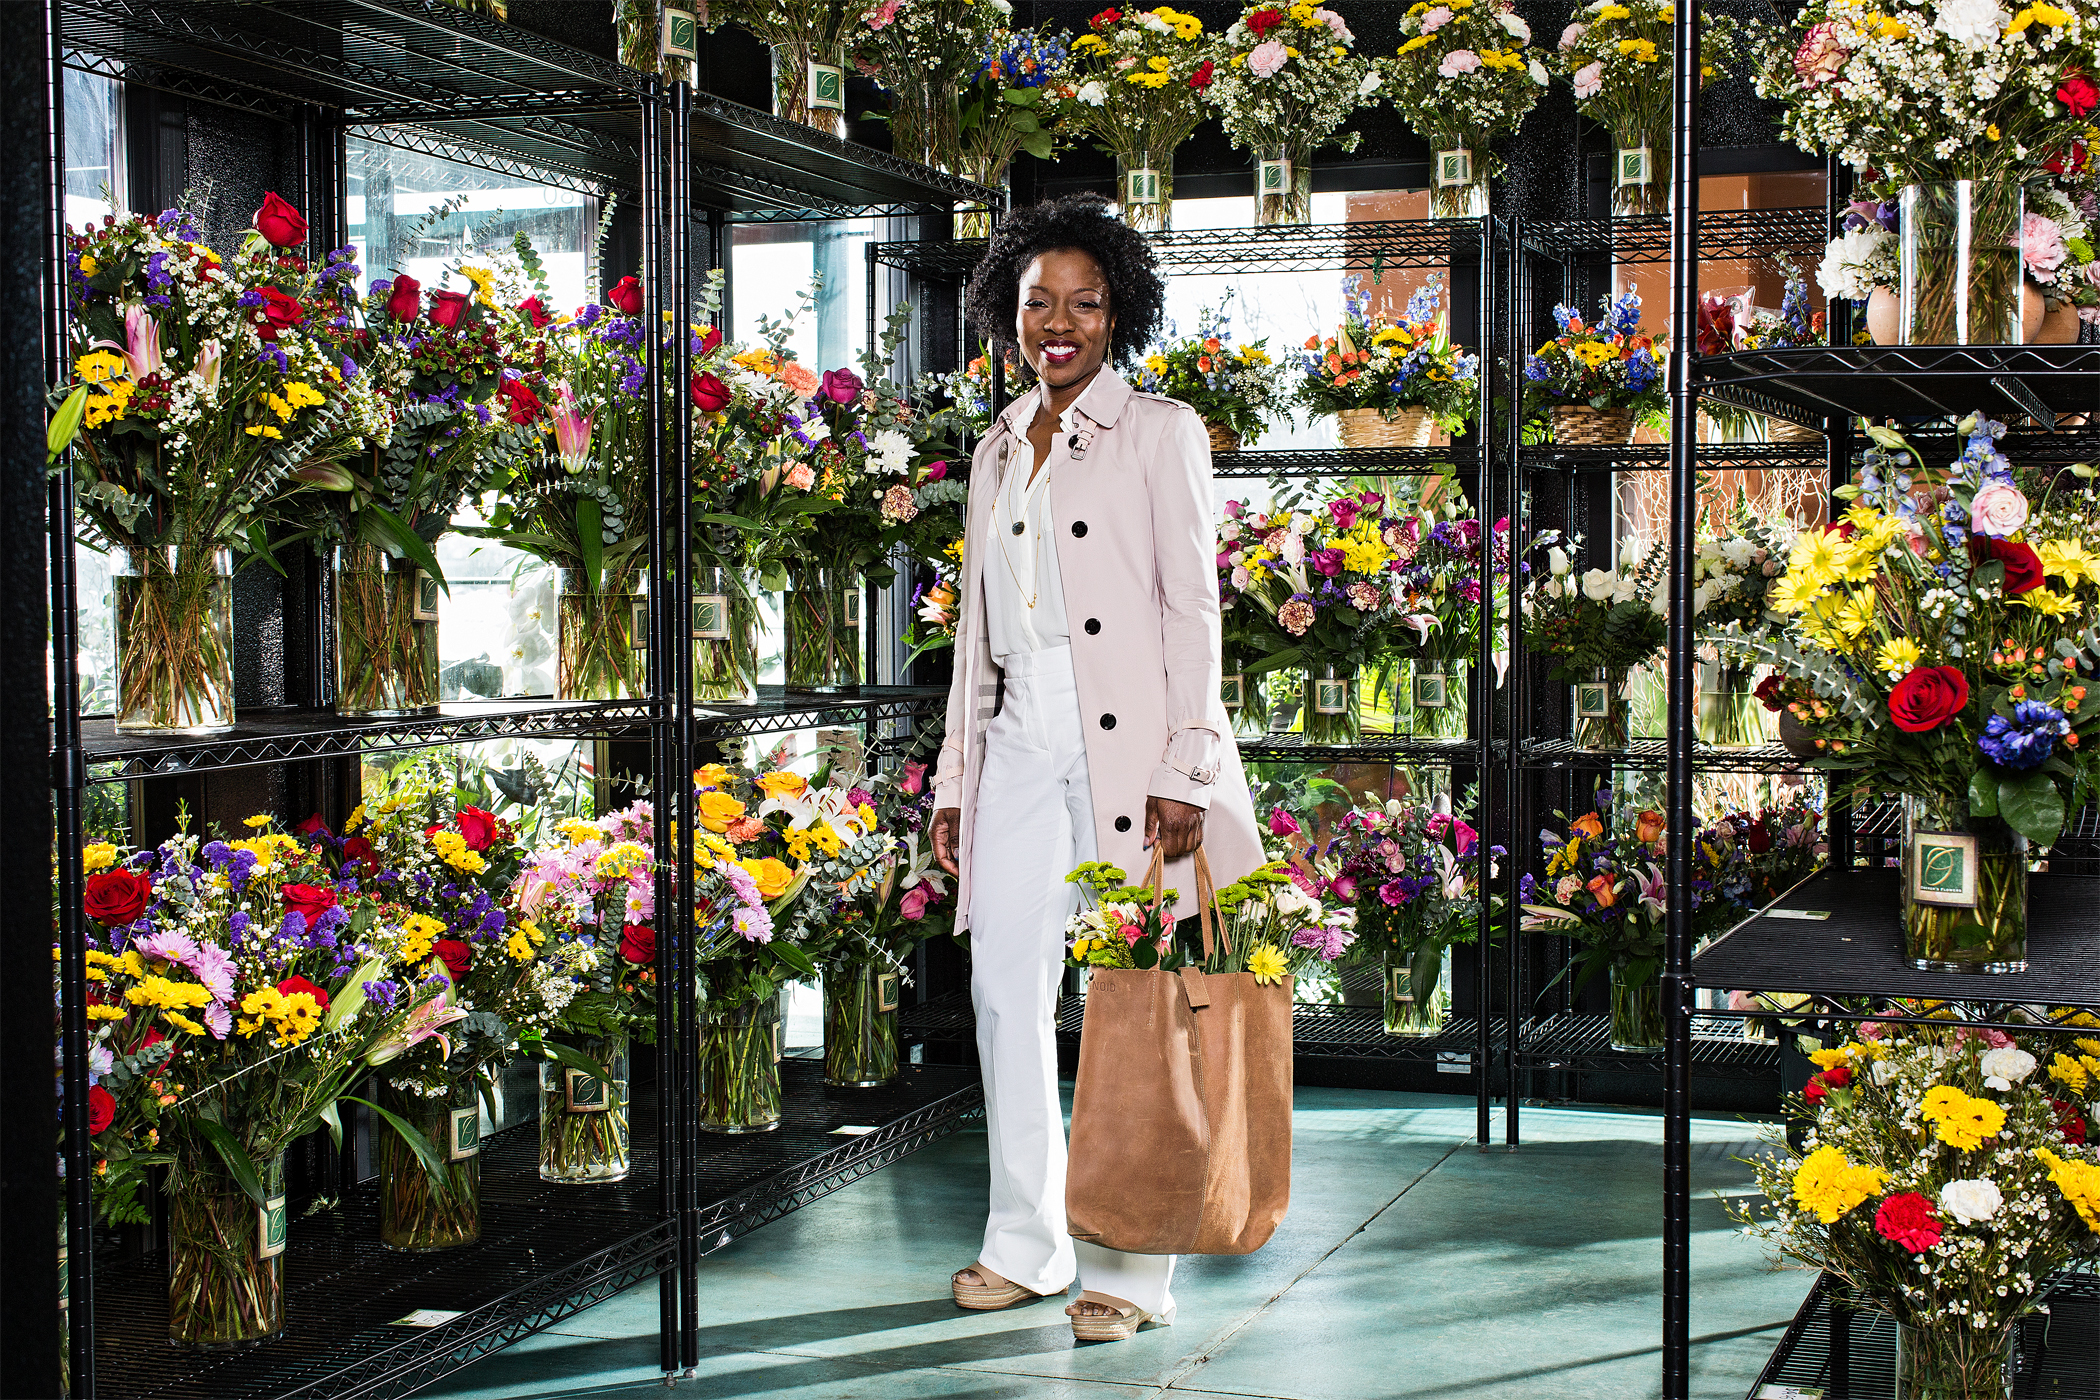 By starting to save for retirement at age 26, Tajuana Hill has put herselv on track to grow a seven-figure 401(k).